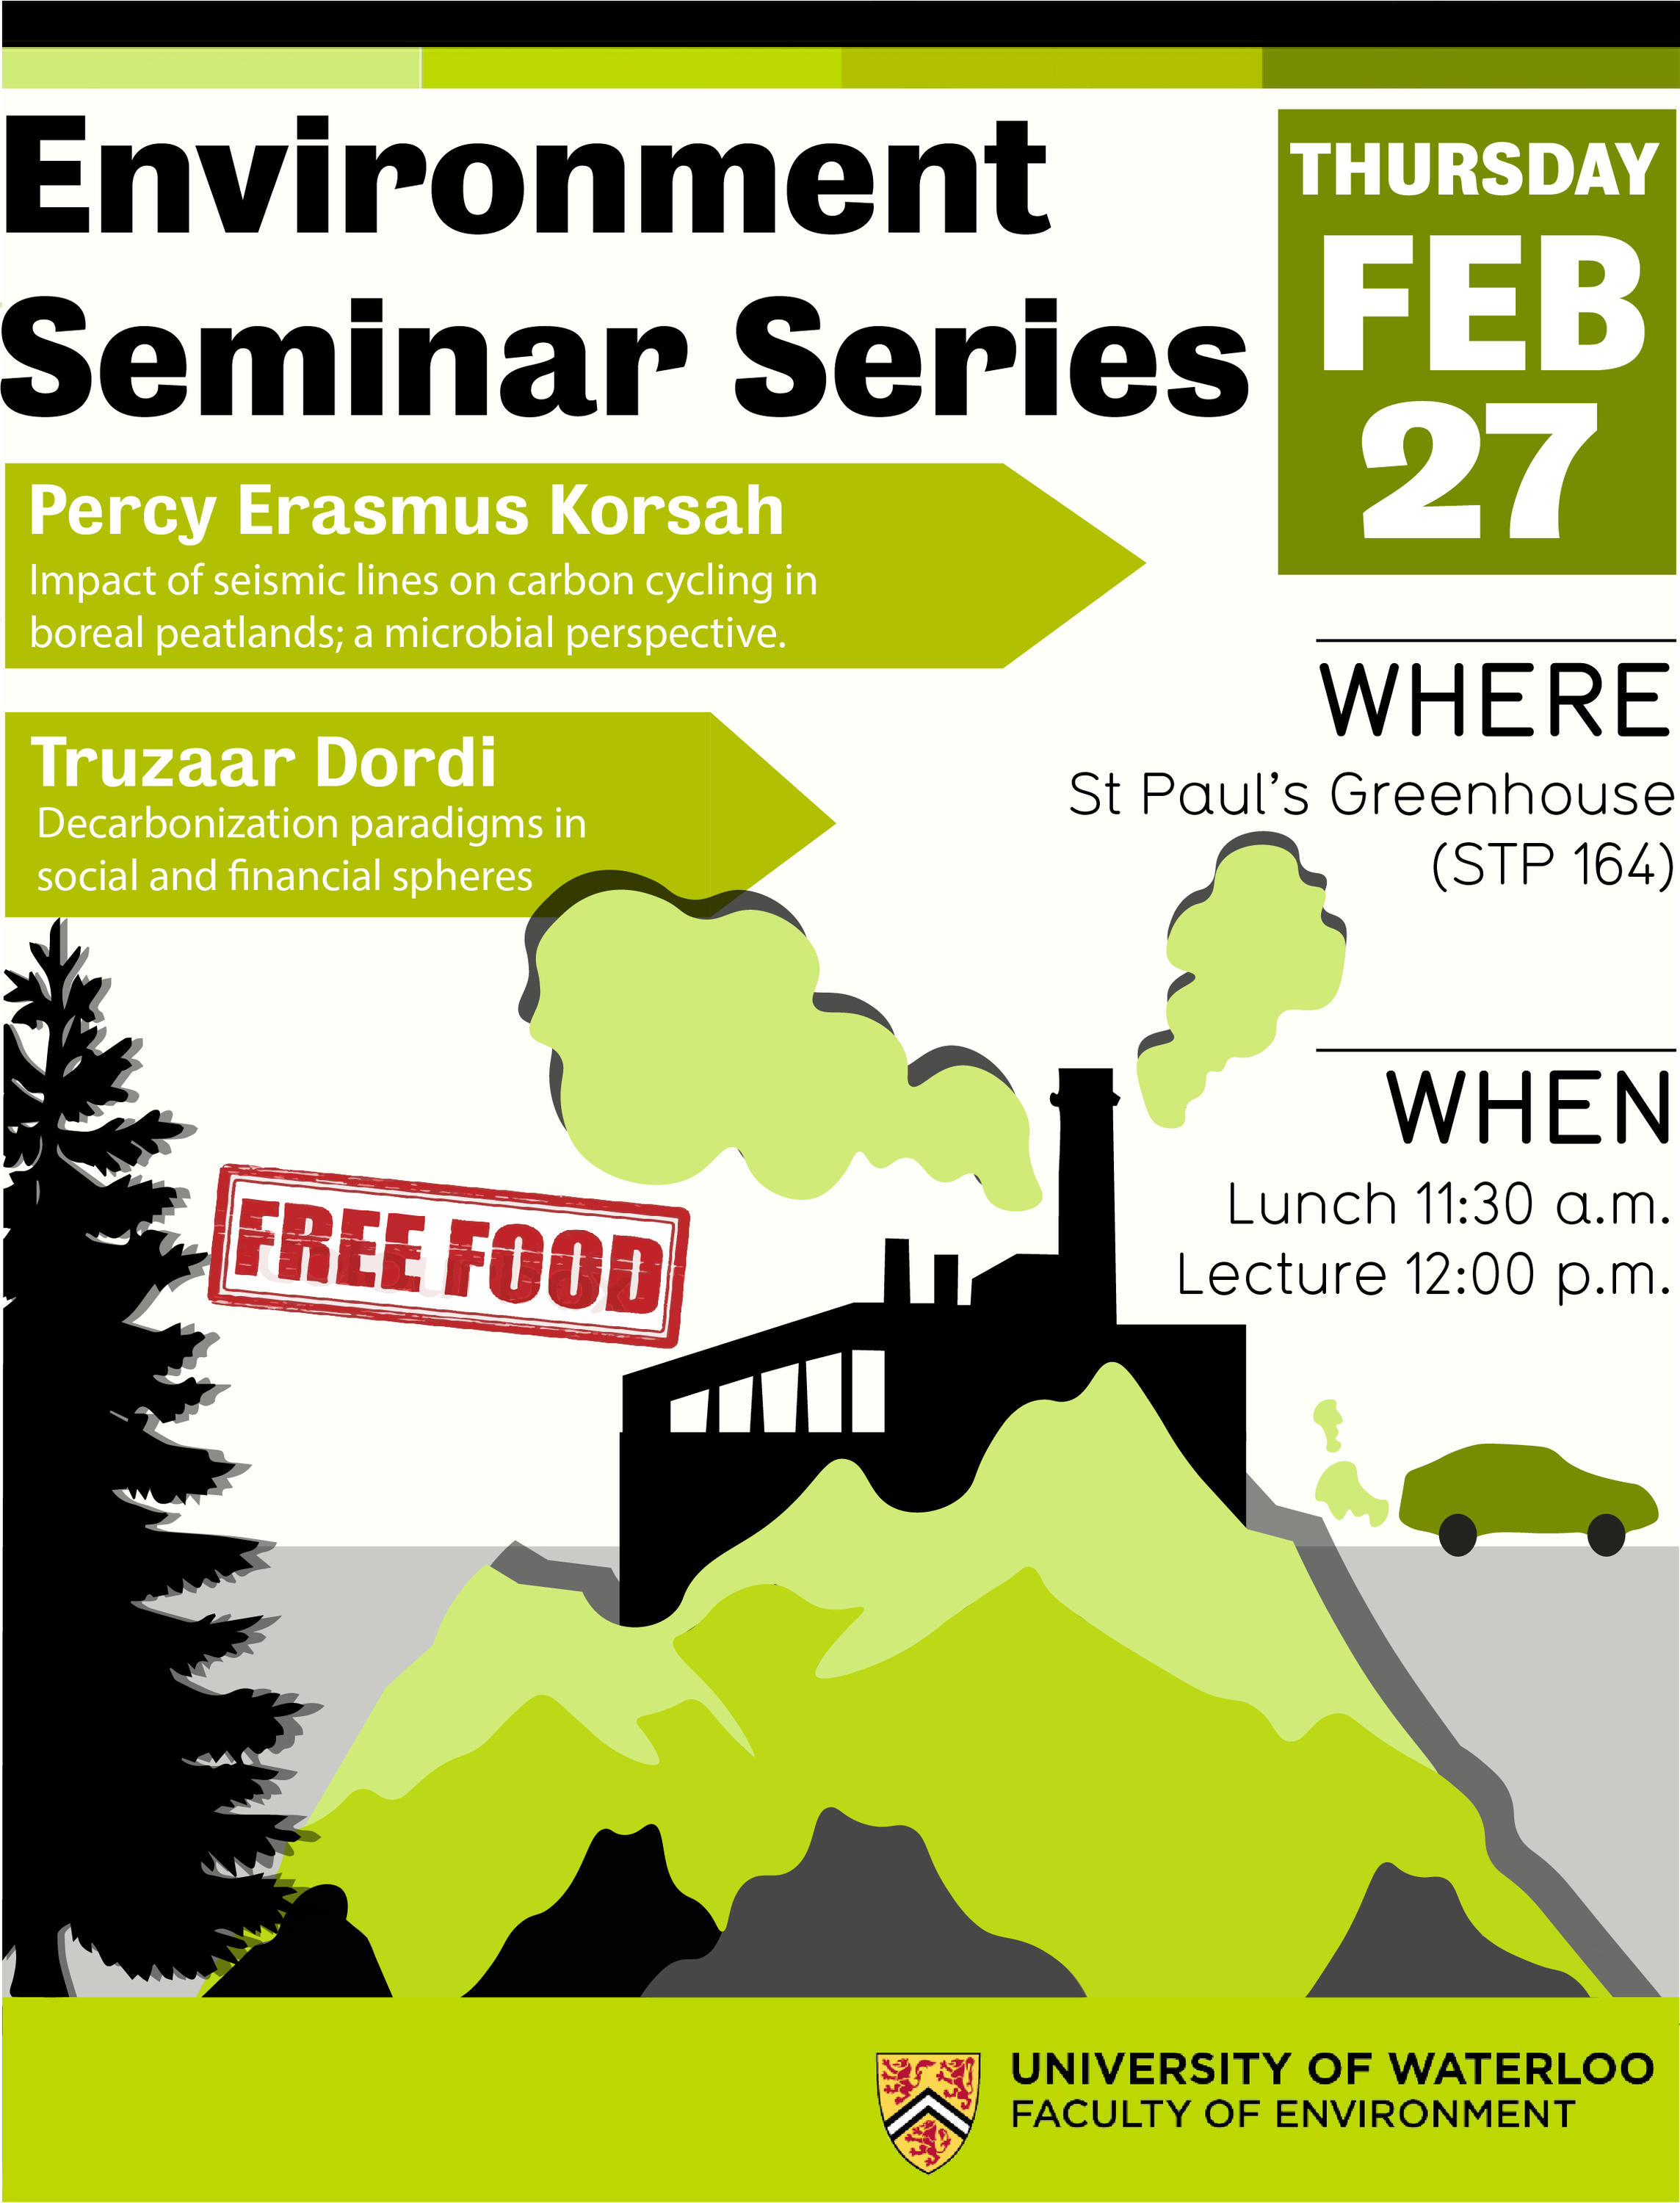 environment Seminar Series poster with information about dates/place